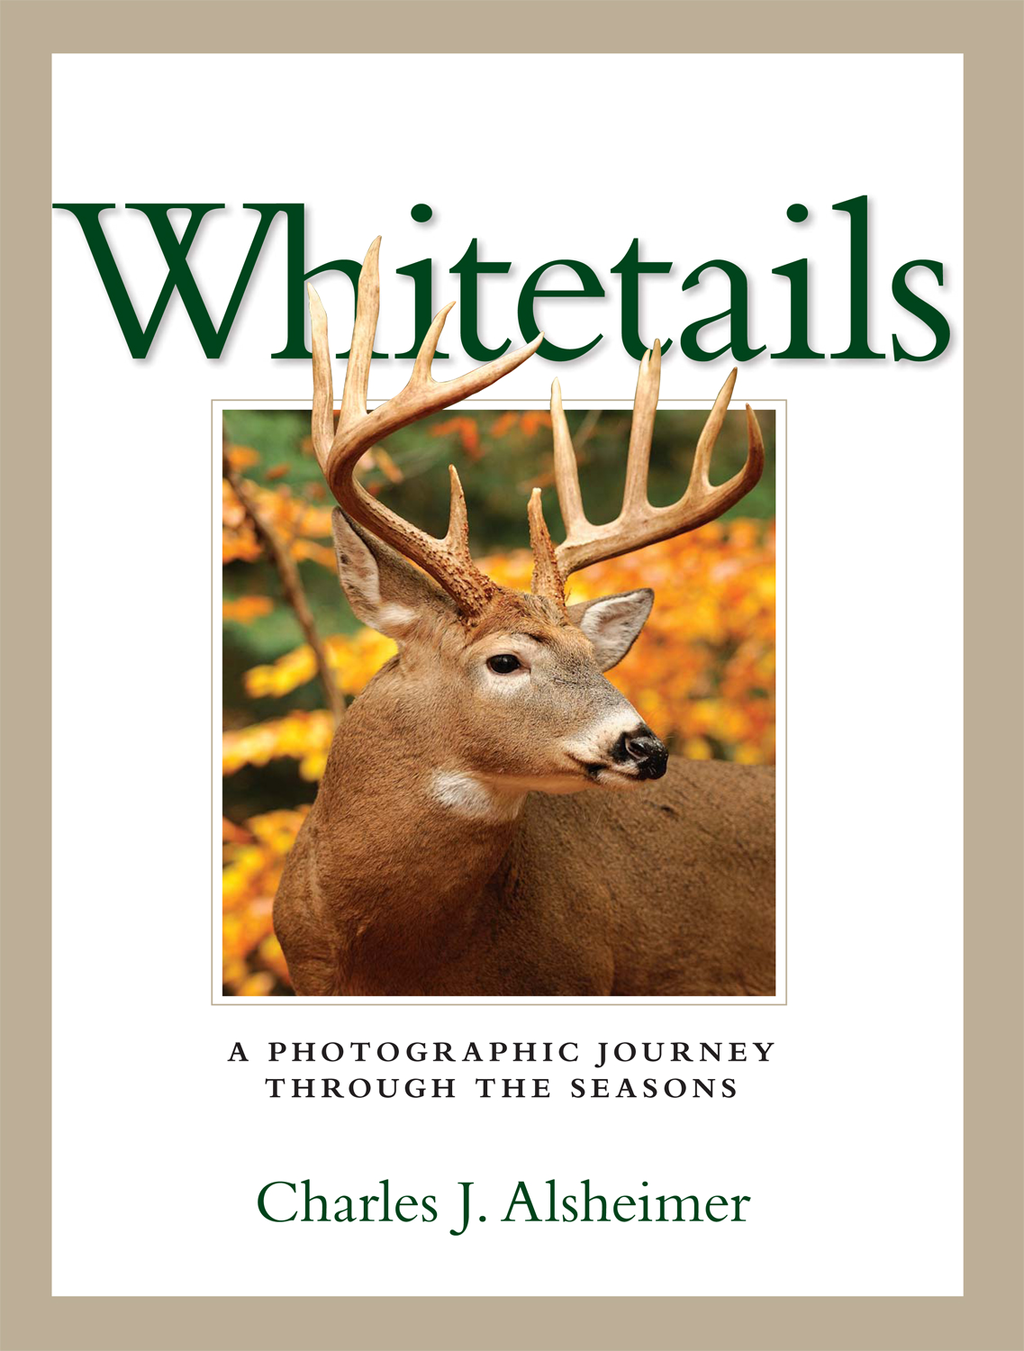 Whitetails A Photographic Journey Through the Seasons